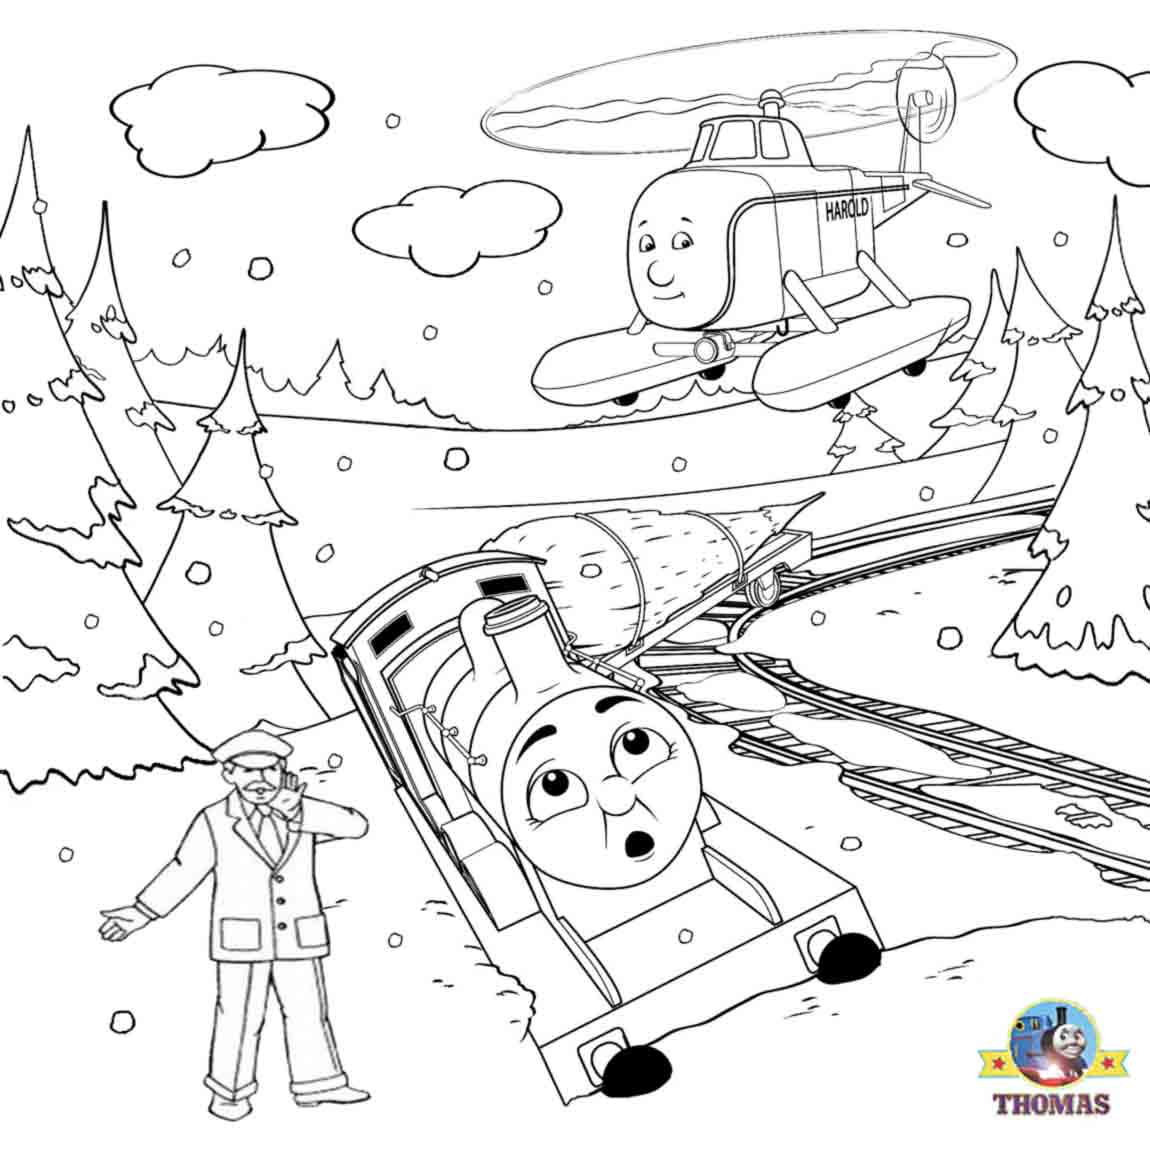 Thomas Tank Engine Coloring Pages, Thomas, Free Engine